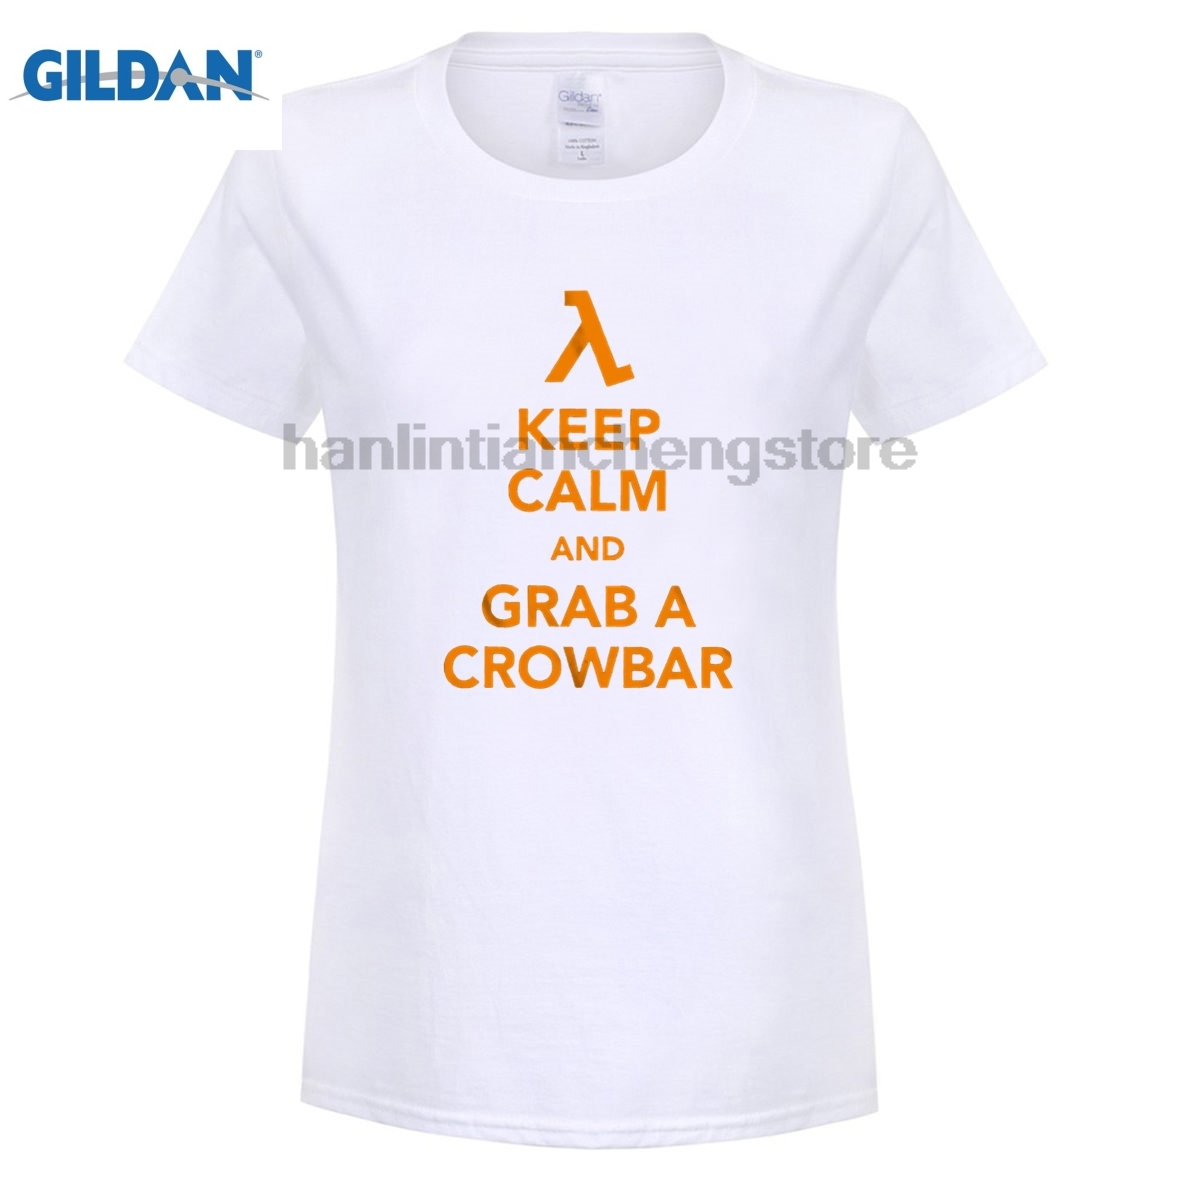 GILDAN FPS Classic Game HALF LIFE women T shirt Keep Calm Grab A Crowbar Boy Letters Printed Short Sleeve Tees O-neck